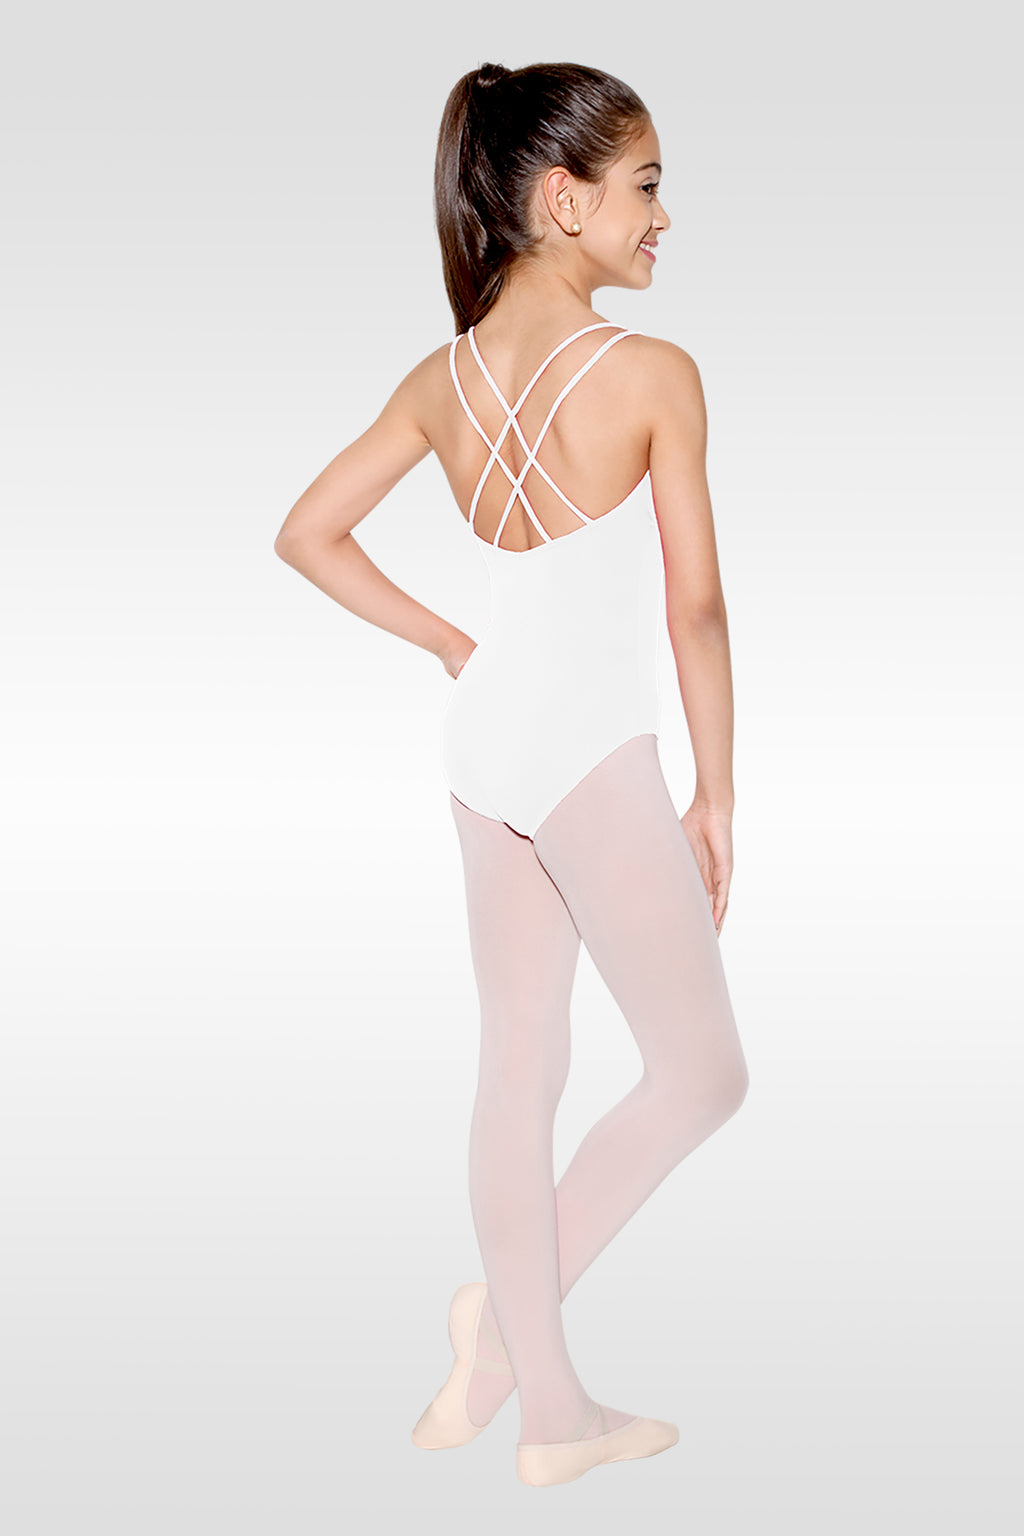 Double Strap Cross Back Leotard - Child